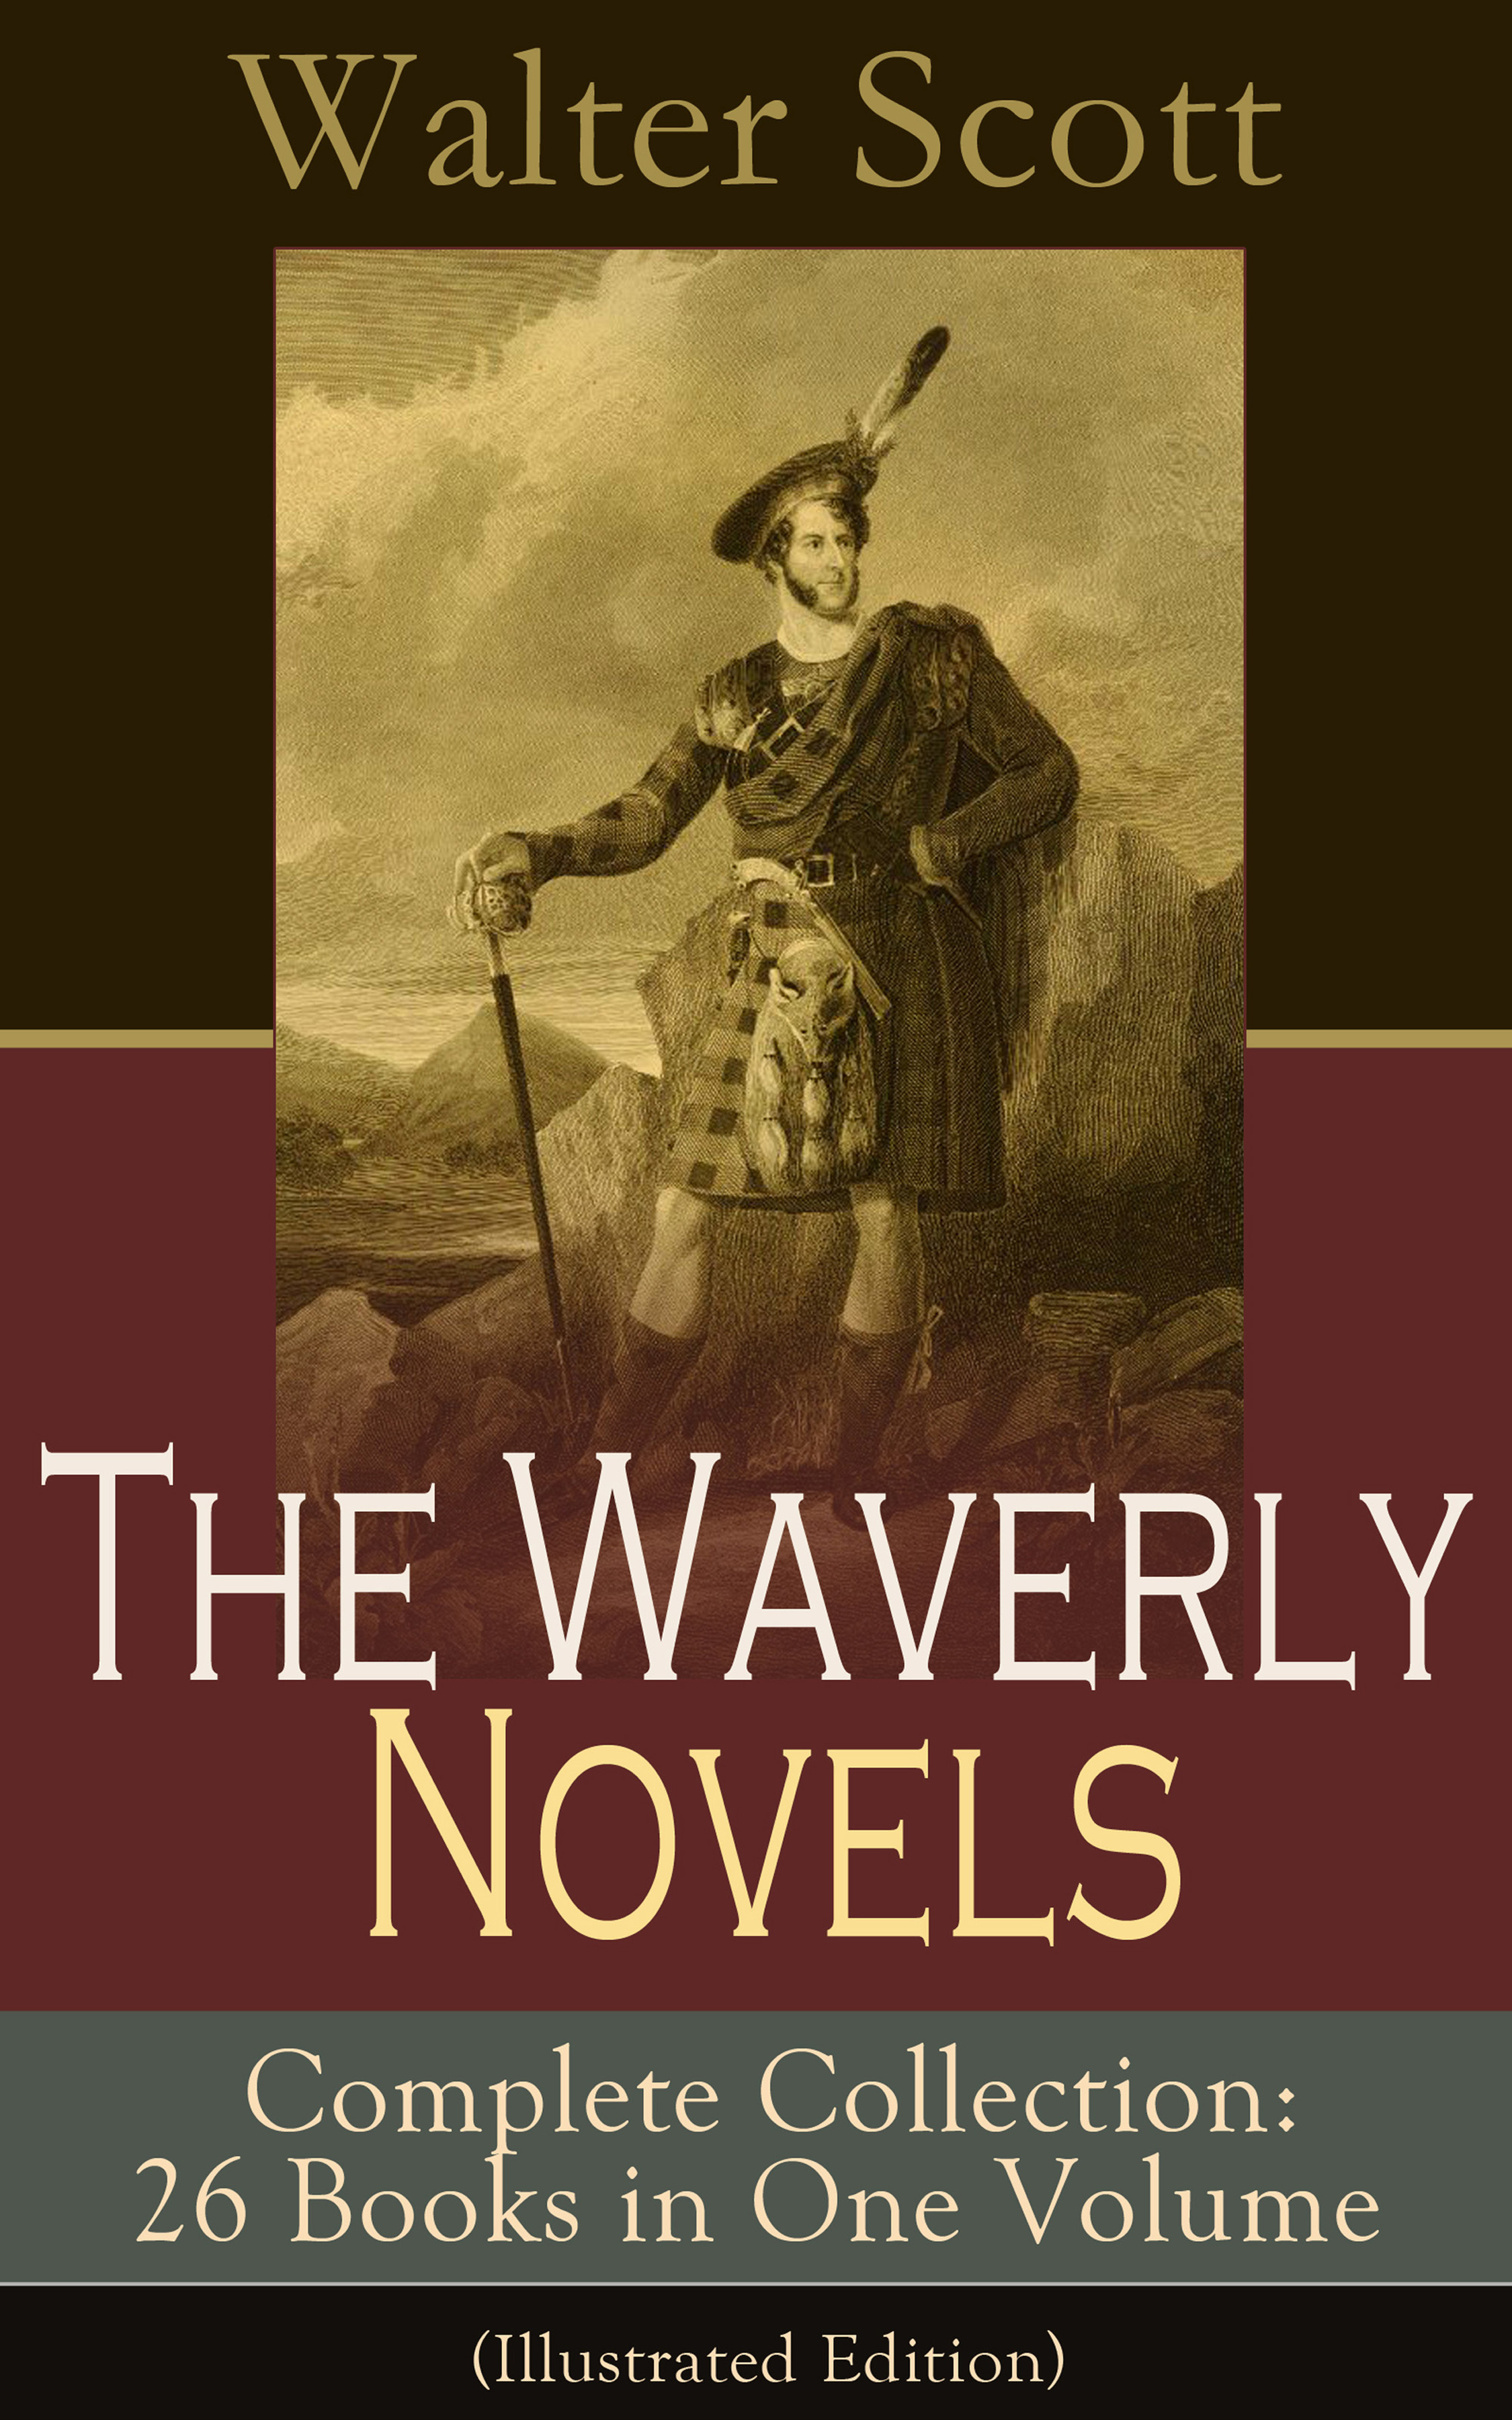 Walter Scott The Waverly Novels - Complete Collection: 26 Books in One Volume (Illustrated Edition)